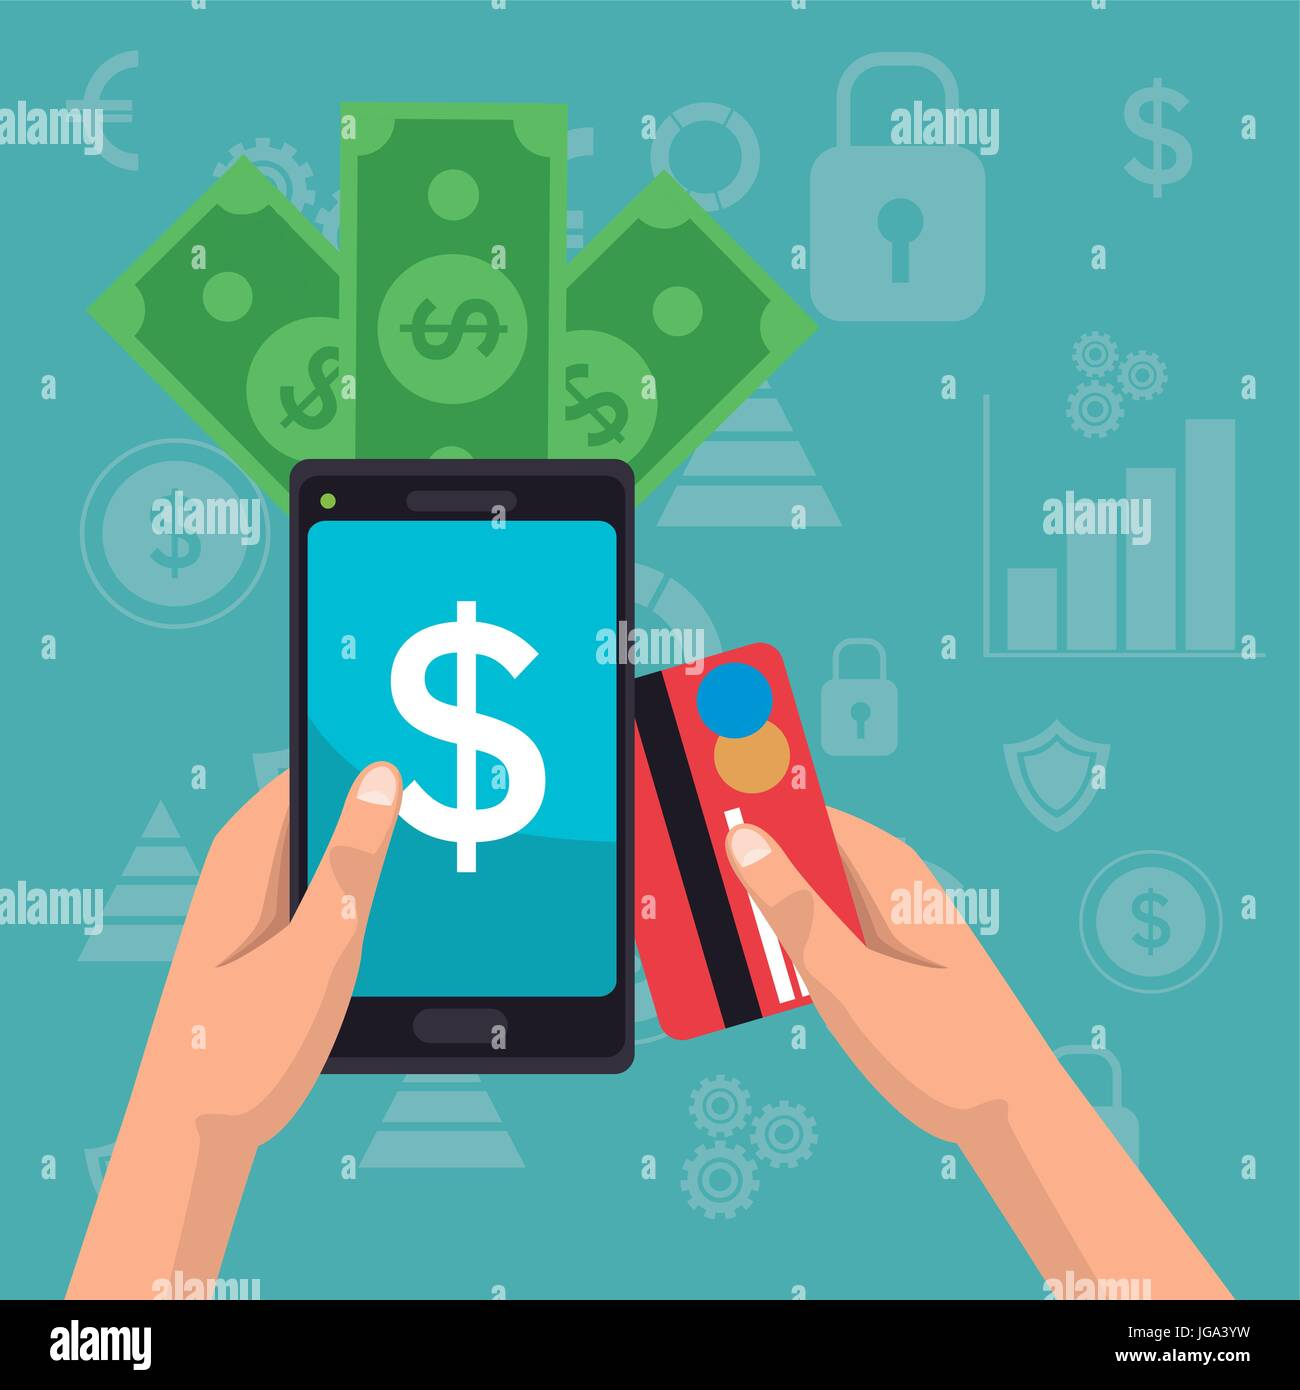 color background analytics investment icons and hand holding a smartphone with bills and debt card - Stock Vector